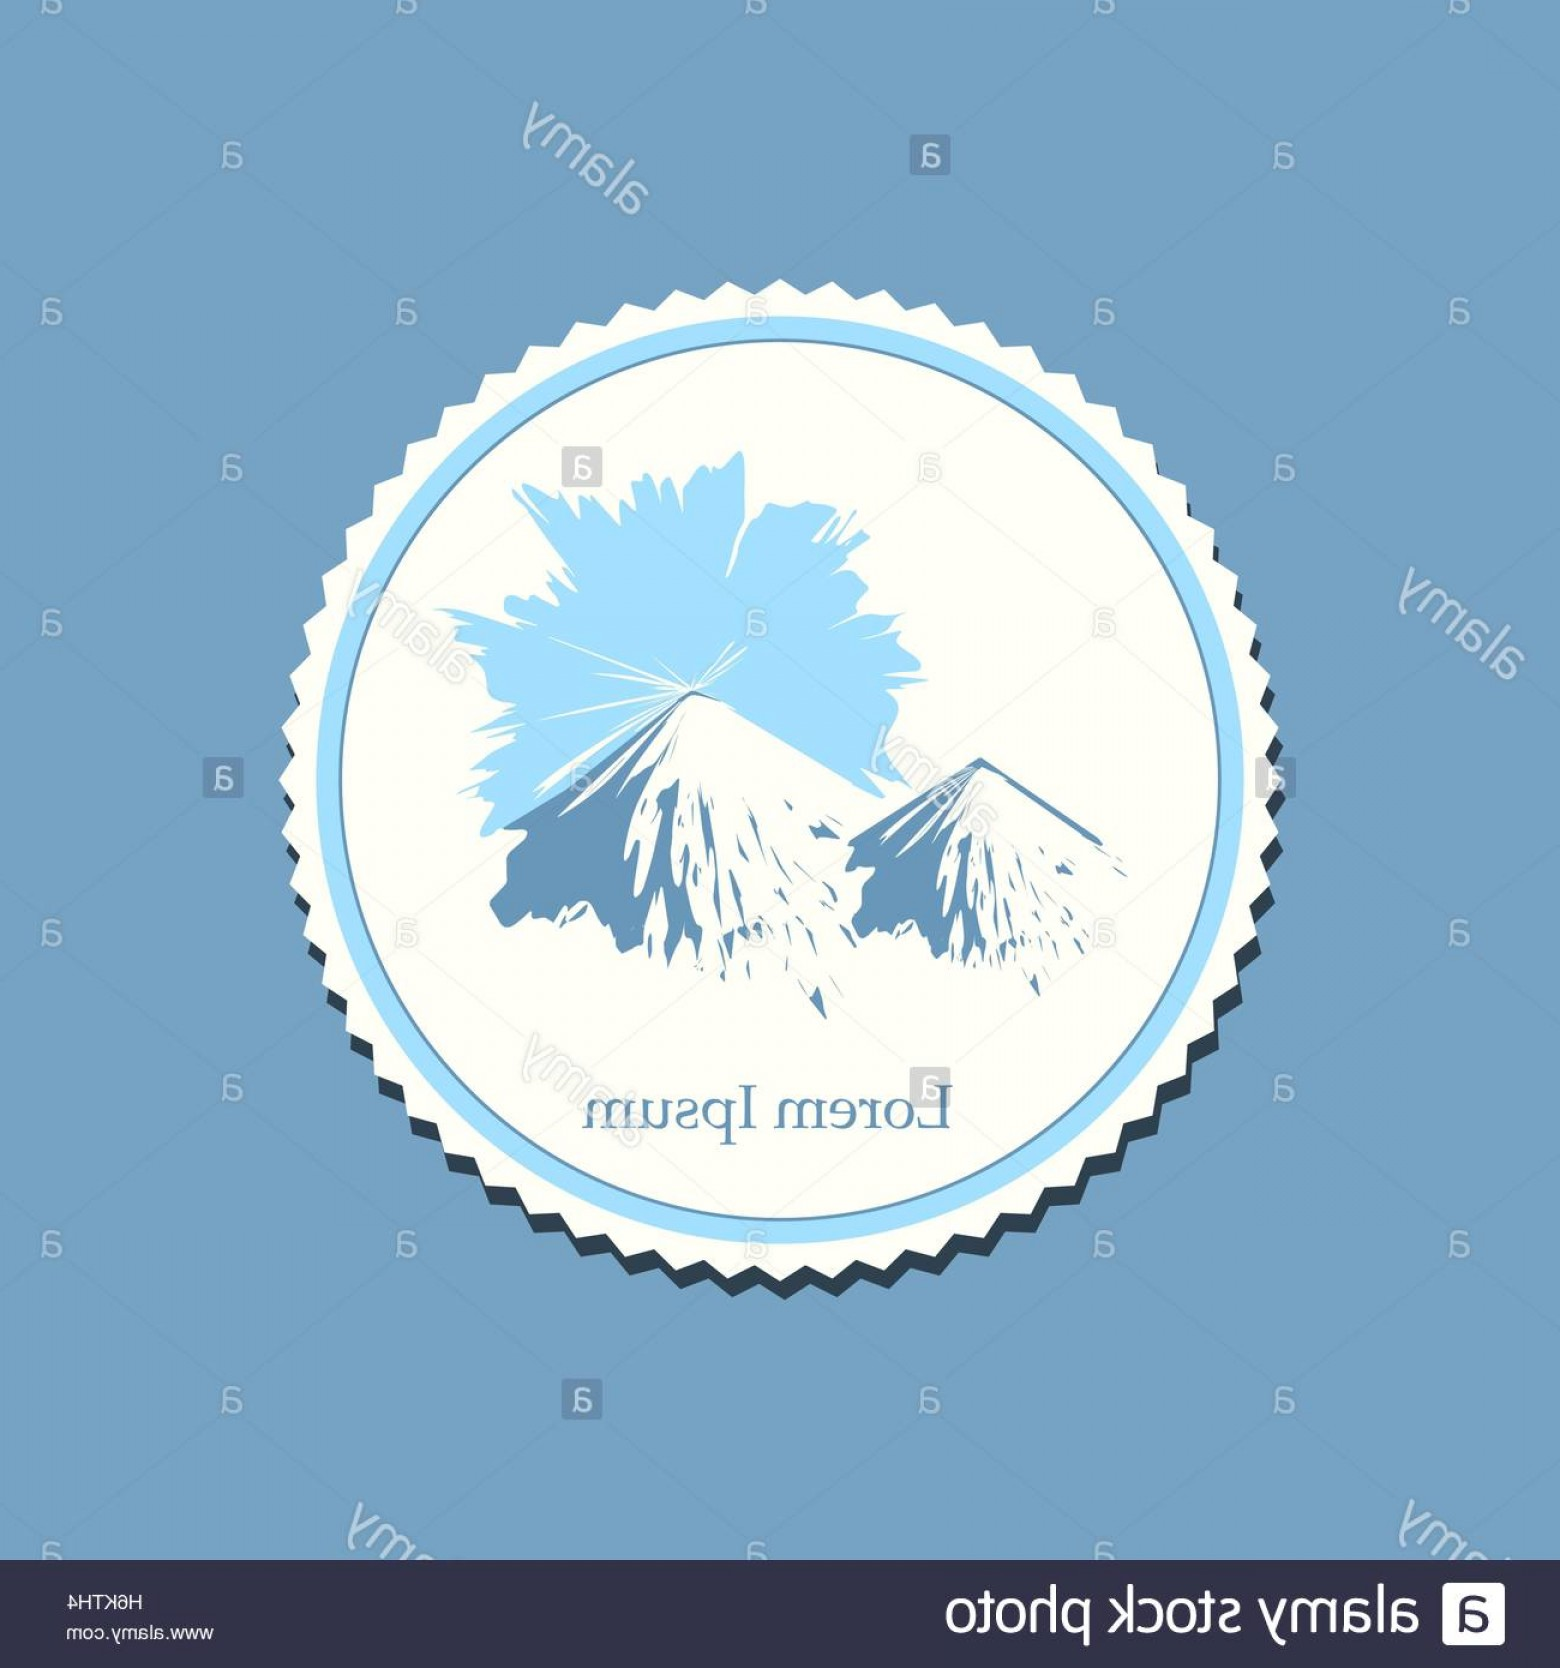 Snowy Mountain Vector Graphics: Stock Photo Snowy Mountain Sunrise Drawing Label Travel Badge Vector Illustration